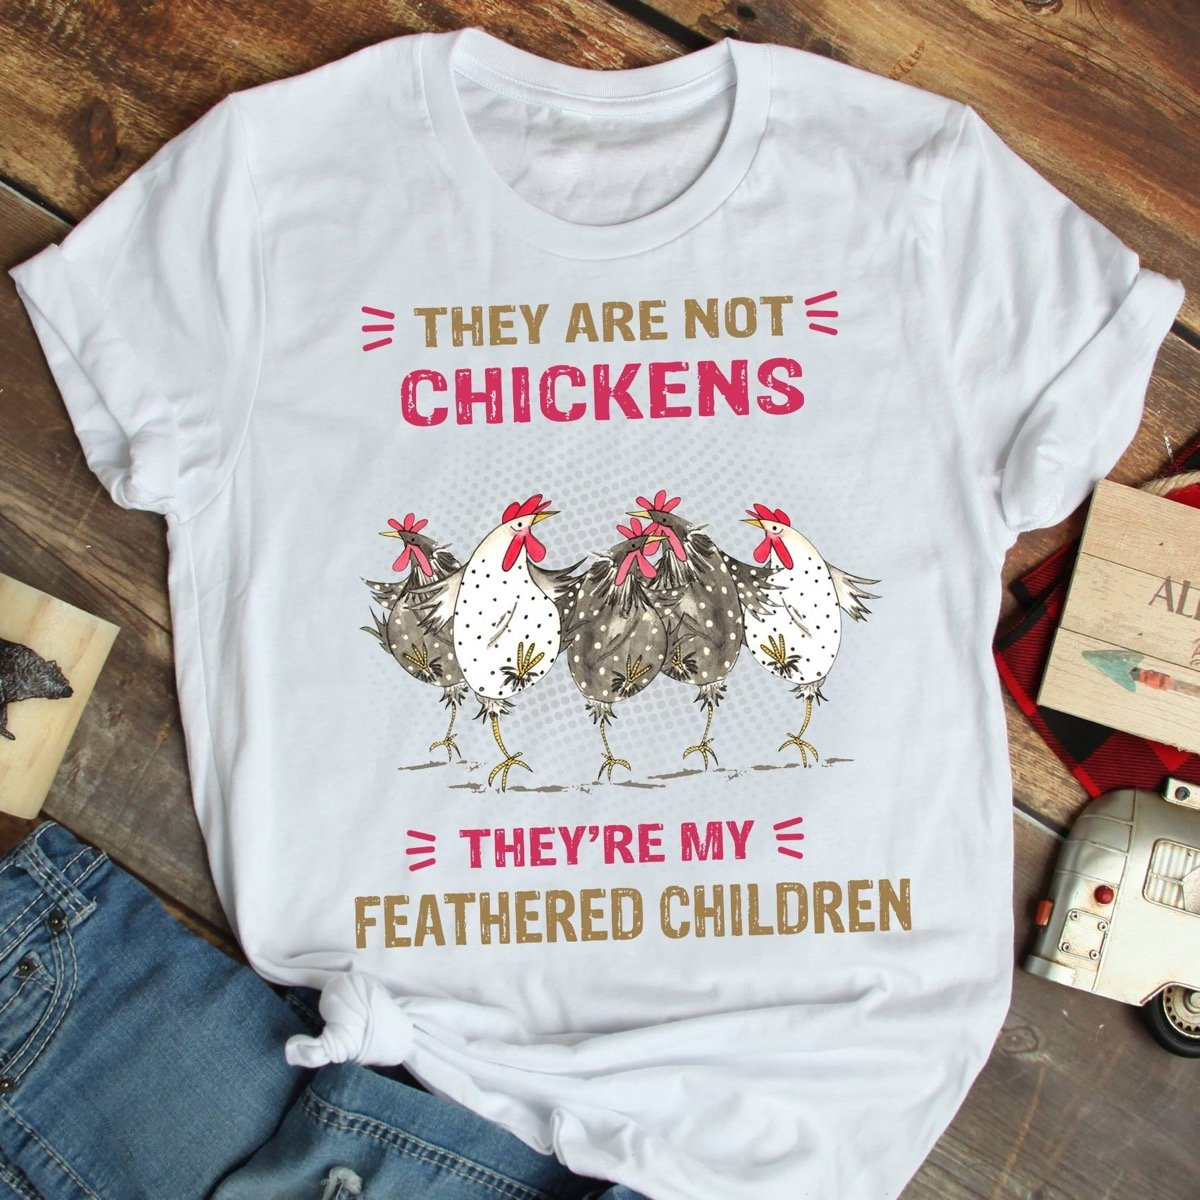 They are not Chicken - They're my feathered Children